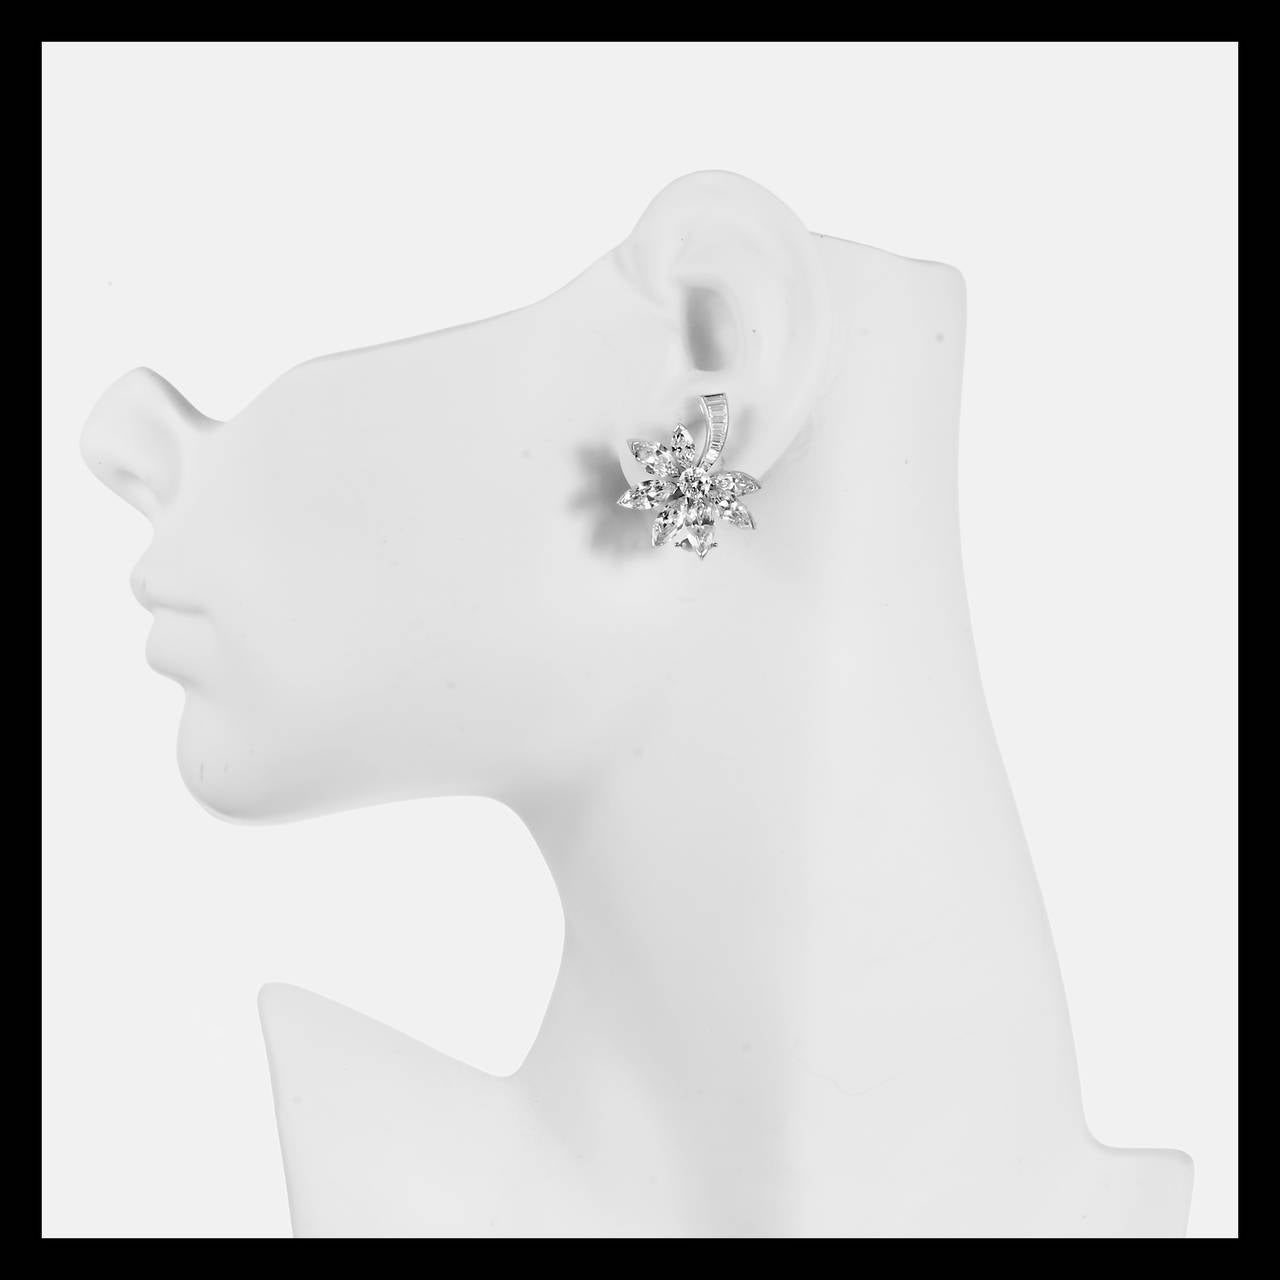 Dramatic and distinctive Fireworks or Comet design handmade Platinum earrings with extra sparkly well cut diamonds in solid Platinum with 14k white gold Omega clip backs and posts. The baguette section goes up and the Marquise point down. An